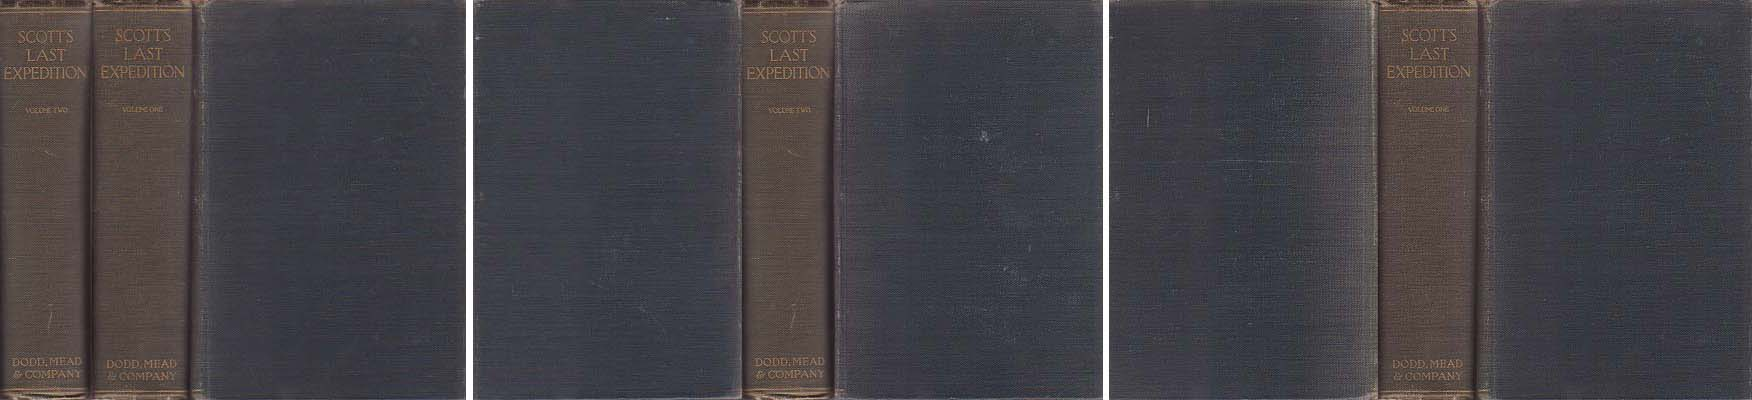 Scott's Last Expedition: In Two Volumes Vol. I. Being the Journals of Captain R. F. Scott, R. N., C. V. O. Vol. II. Being the Reports of the Journeys and the Scientific Work Undertaken by Dr. E. A. Wilson and the Surviving Members of the Expedition: Scott, Robert Falcon